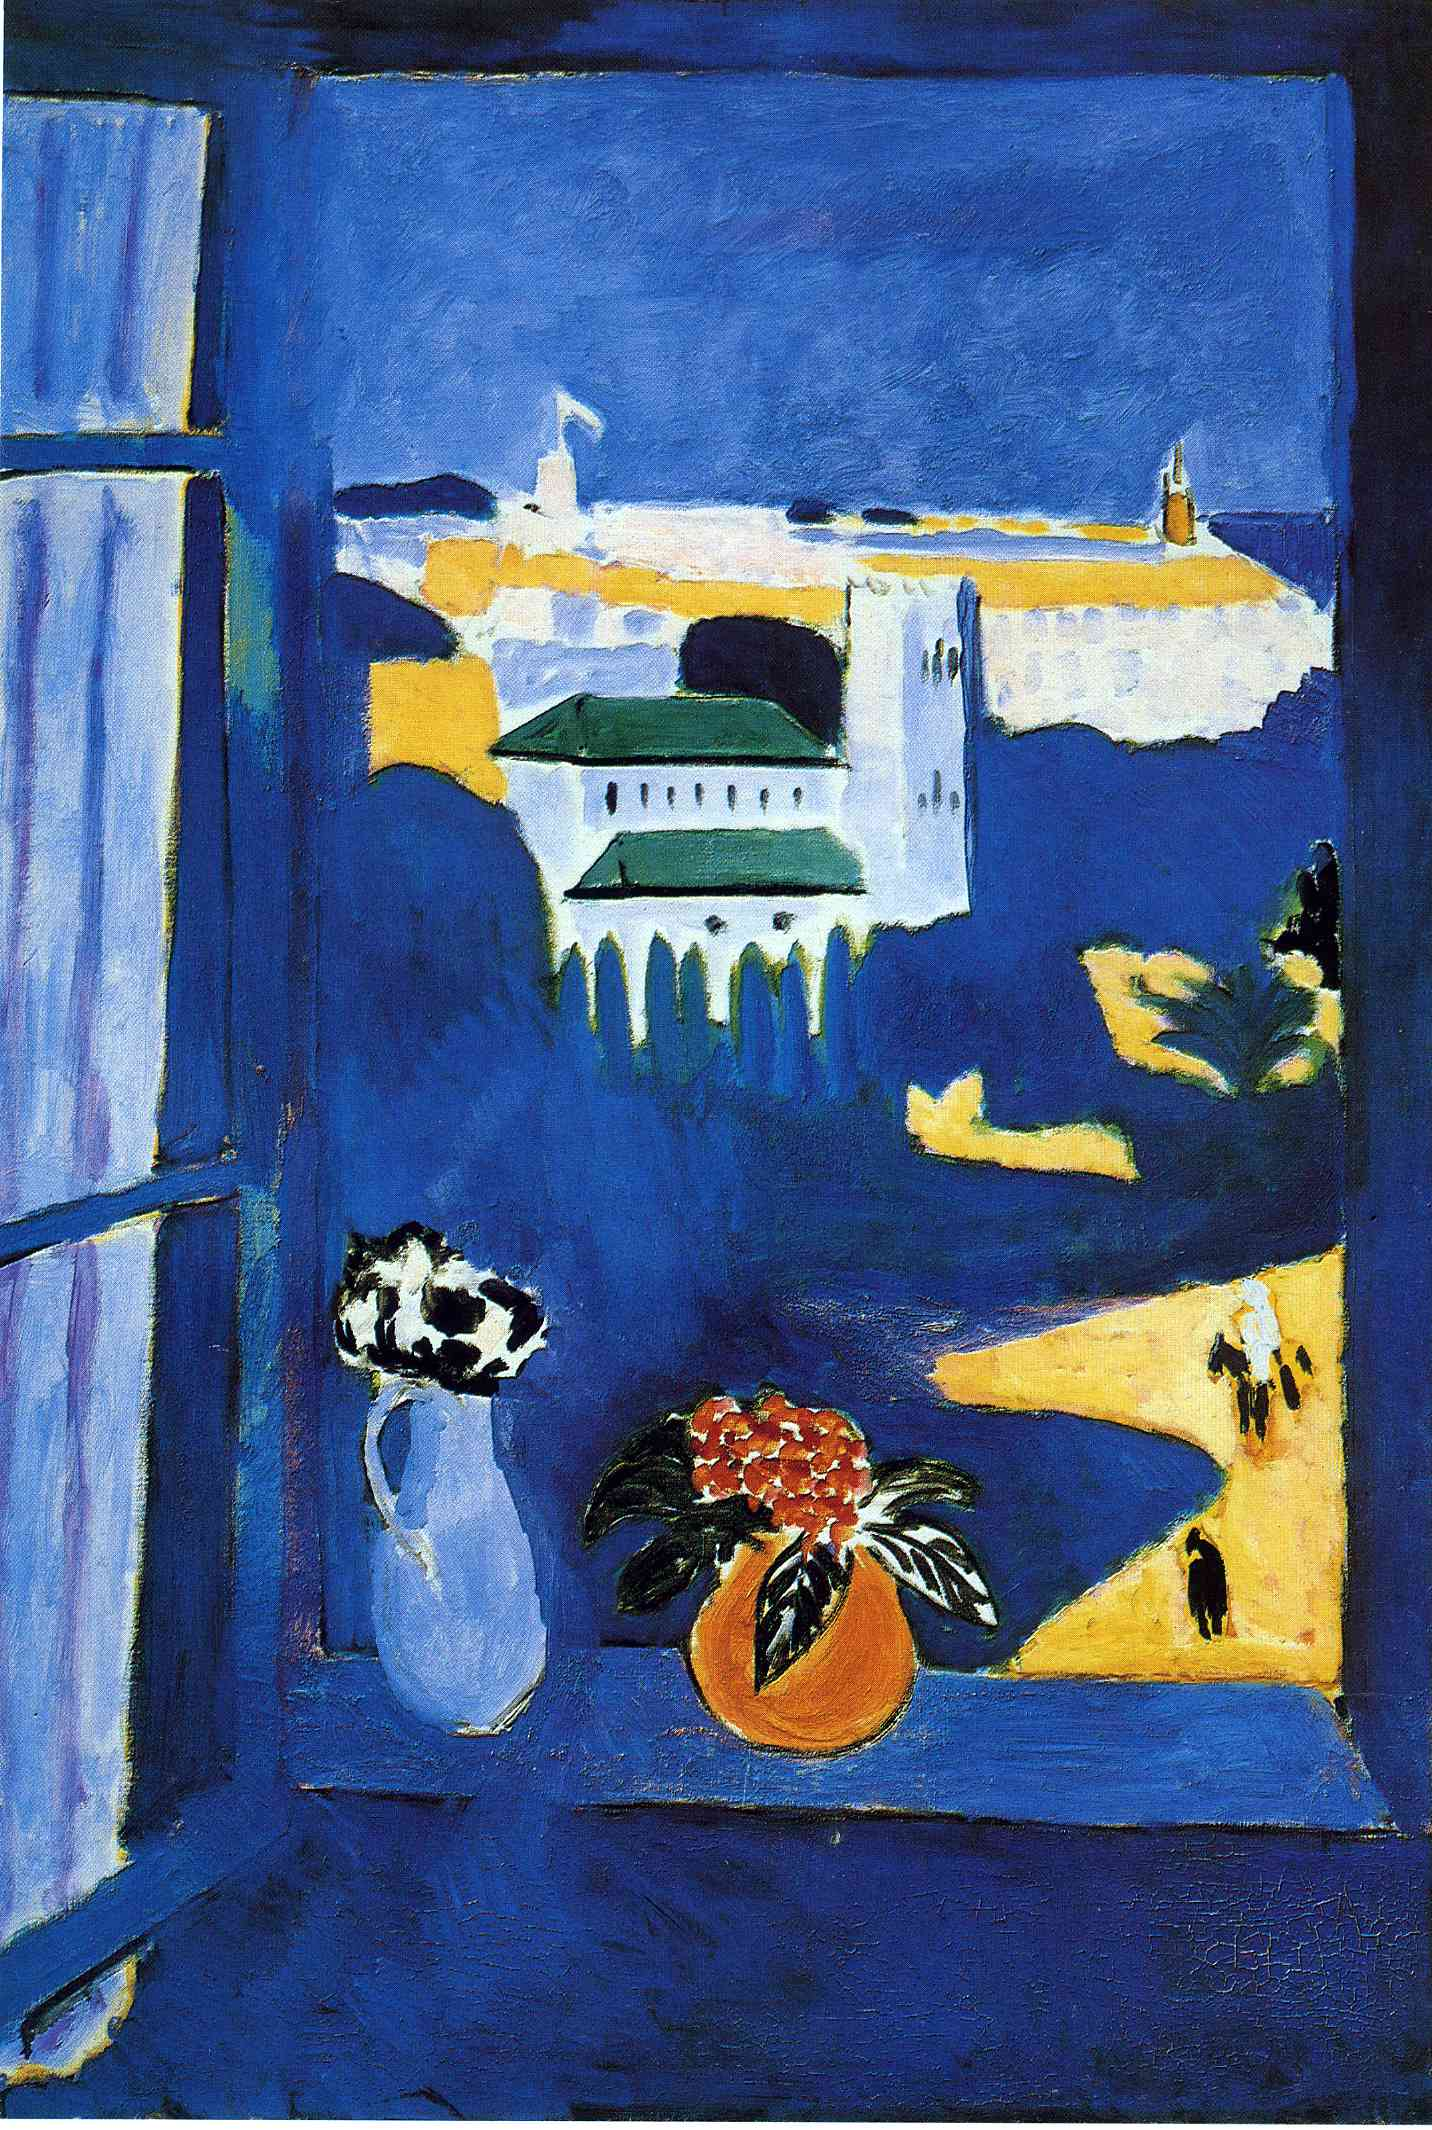 A year in tabuk fresh reminiscences writing the maghreb for Henri matisse fenetre